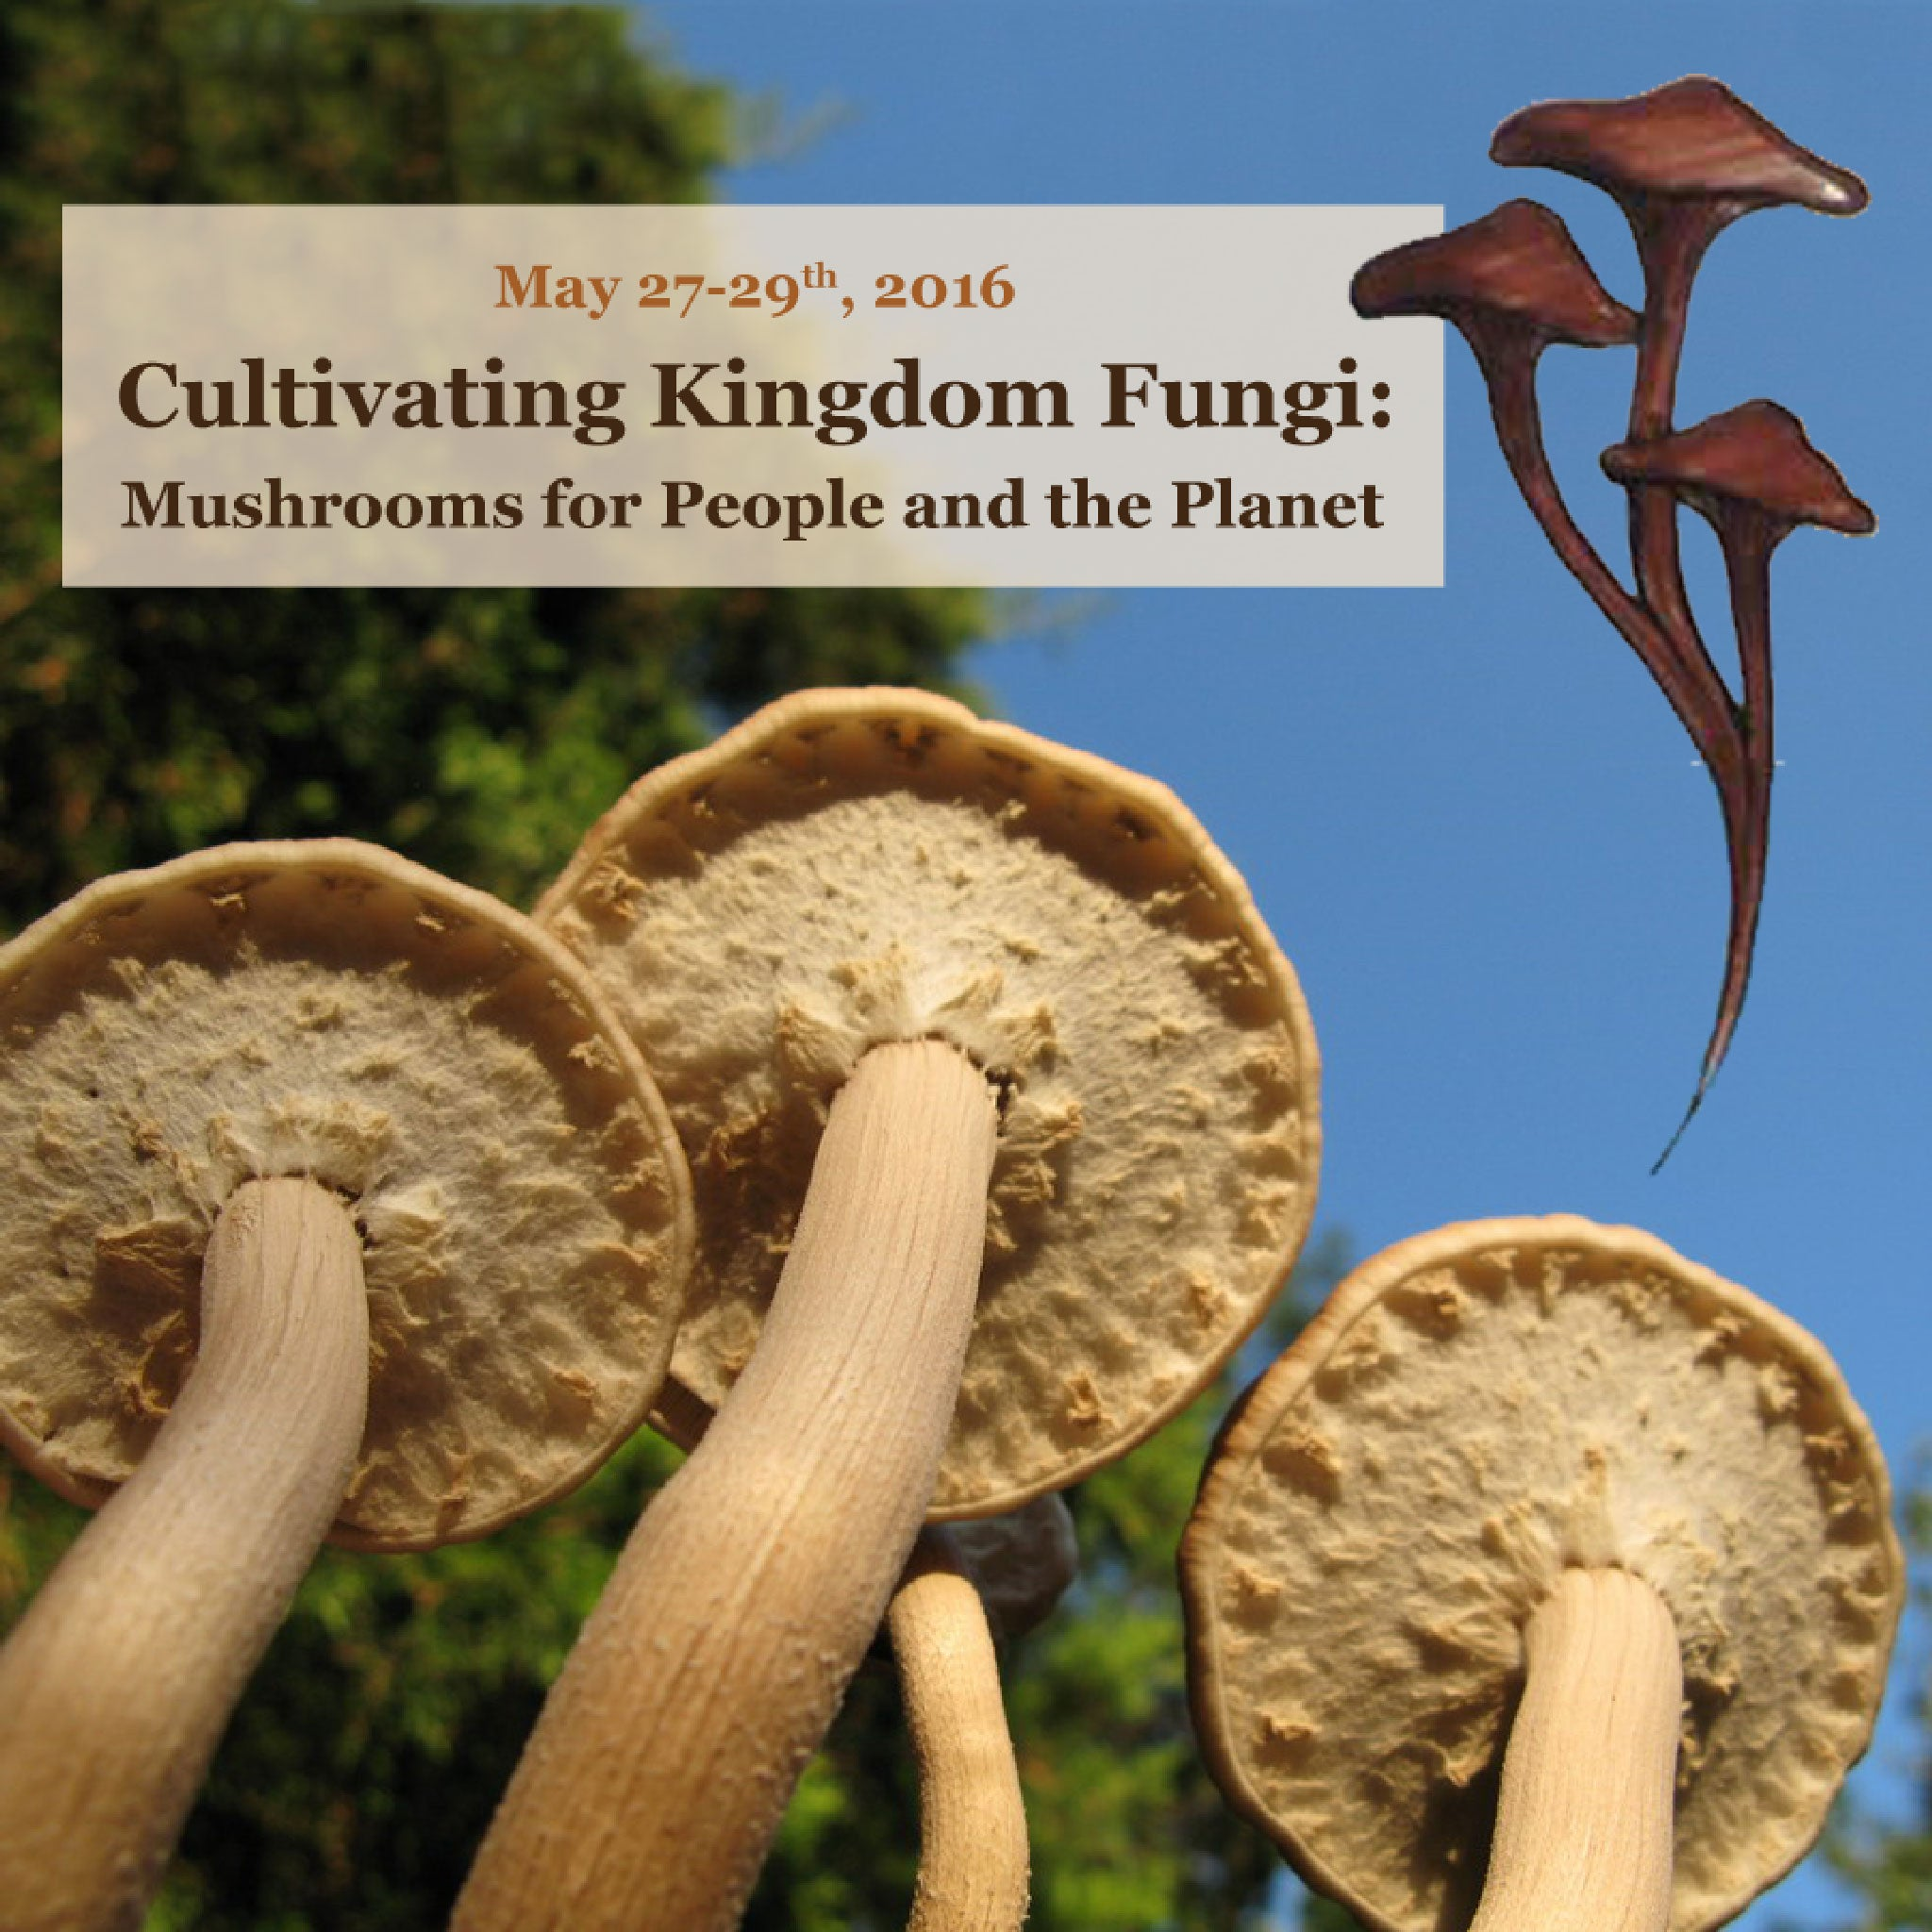 Cultivating Kingdom Fungi Workshop